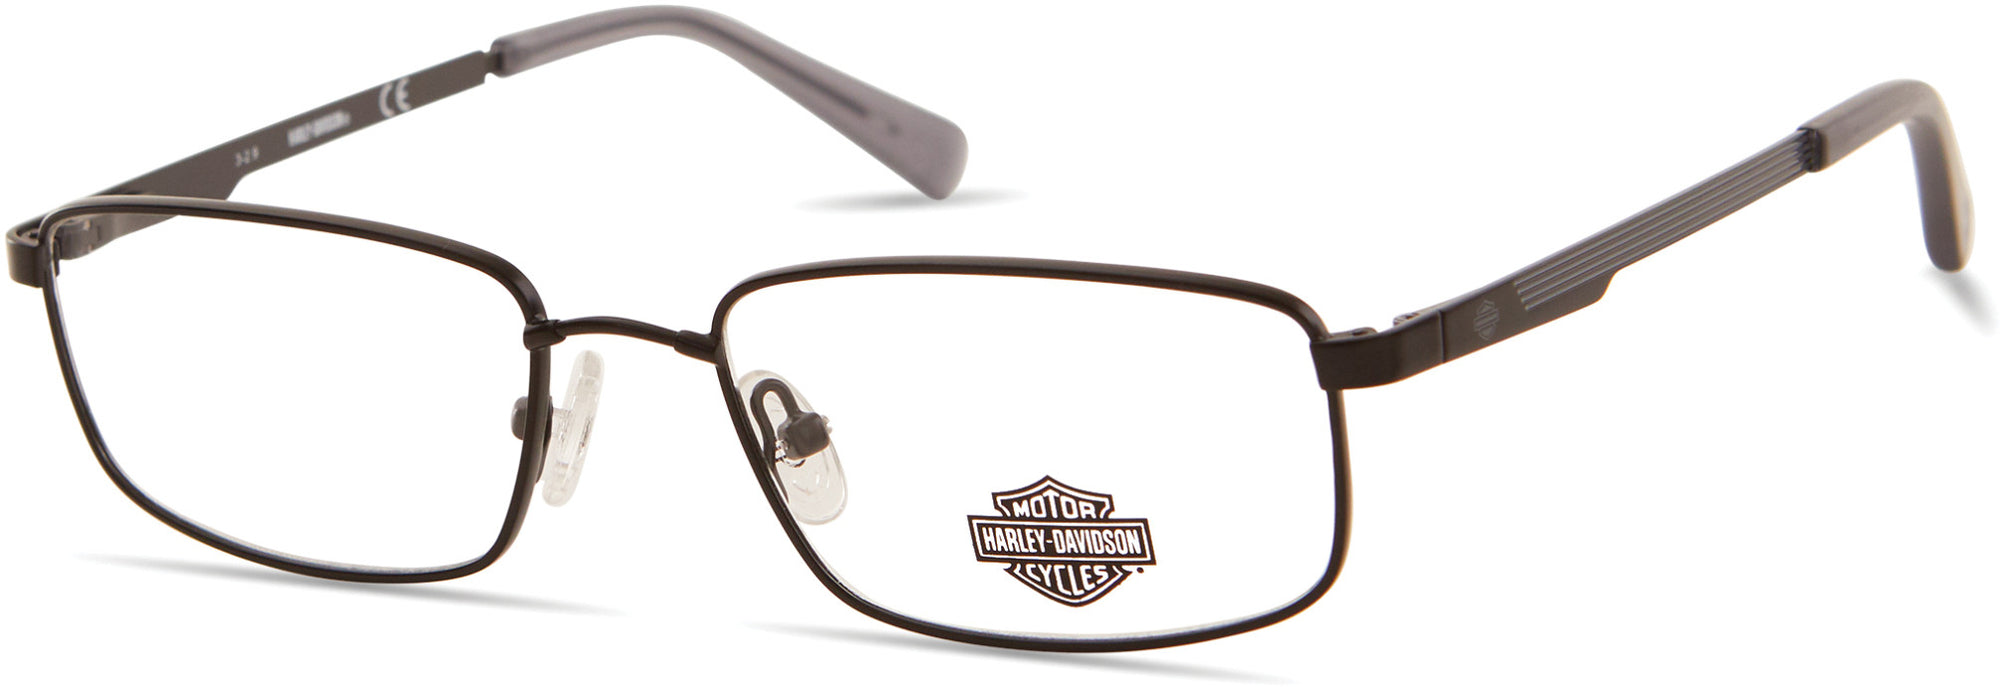 Harley-Davidson HD0141T Rectangular Eyeglasses 002-002 - Matte Black